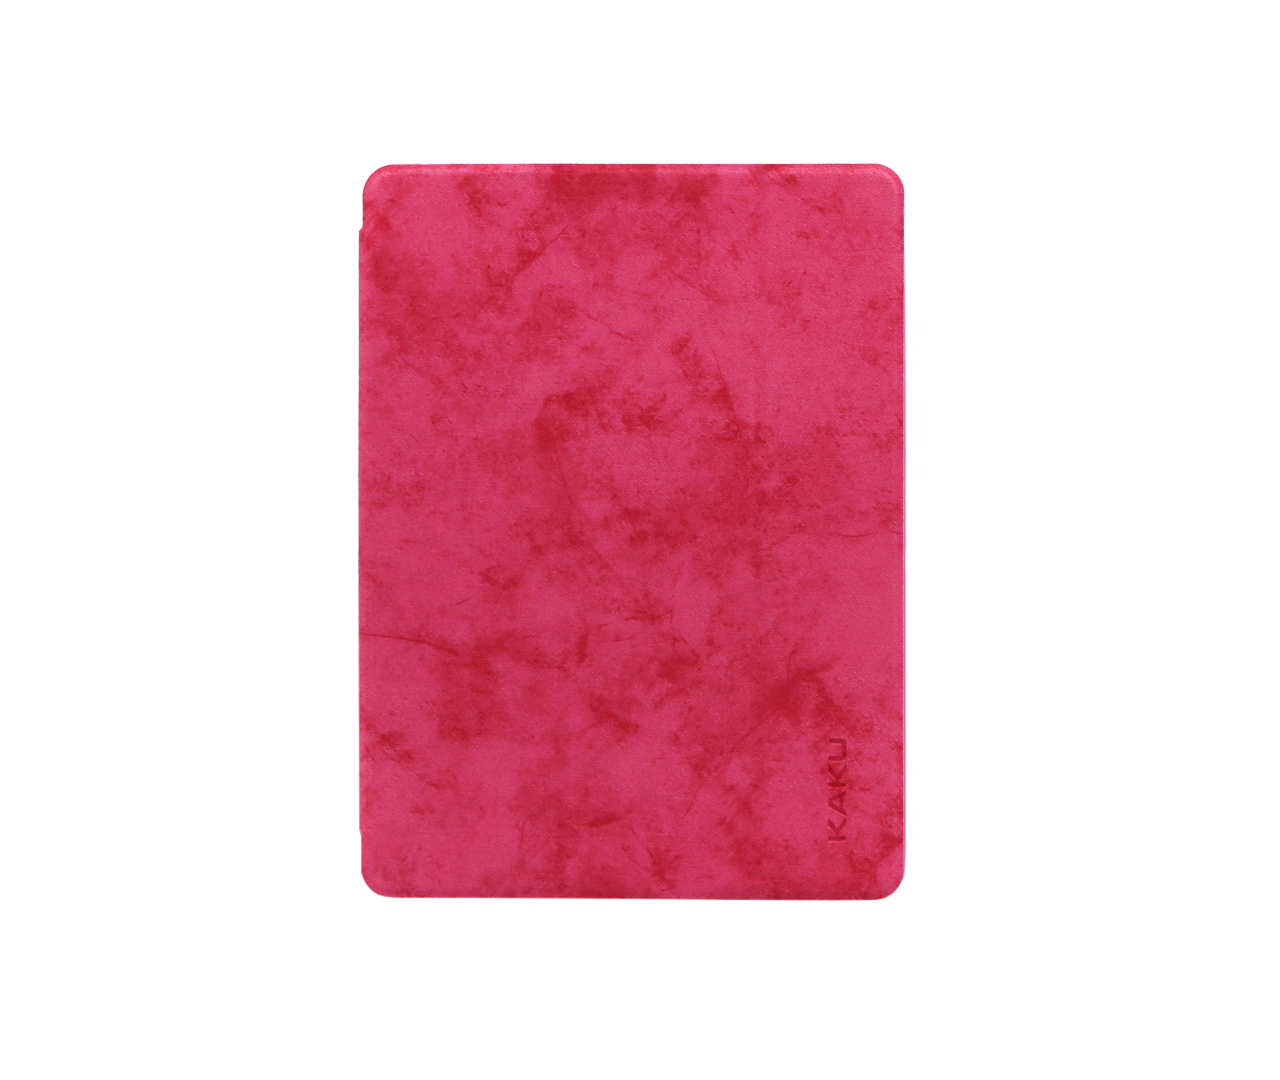 IKAKU Pen Slot Series Flip Cover For Ipad Mini 4 / A1538 / A1550 (Red)